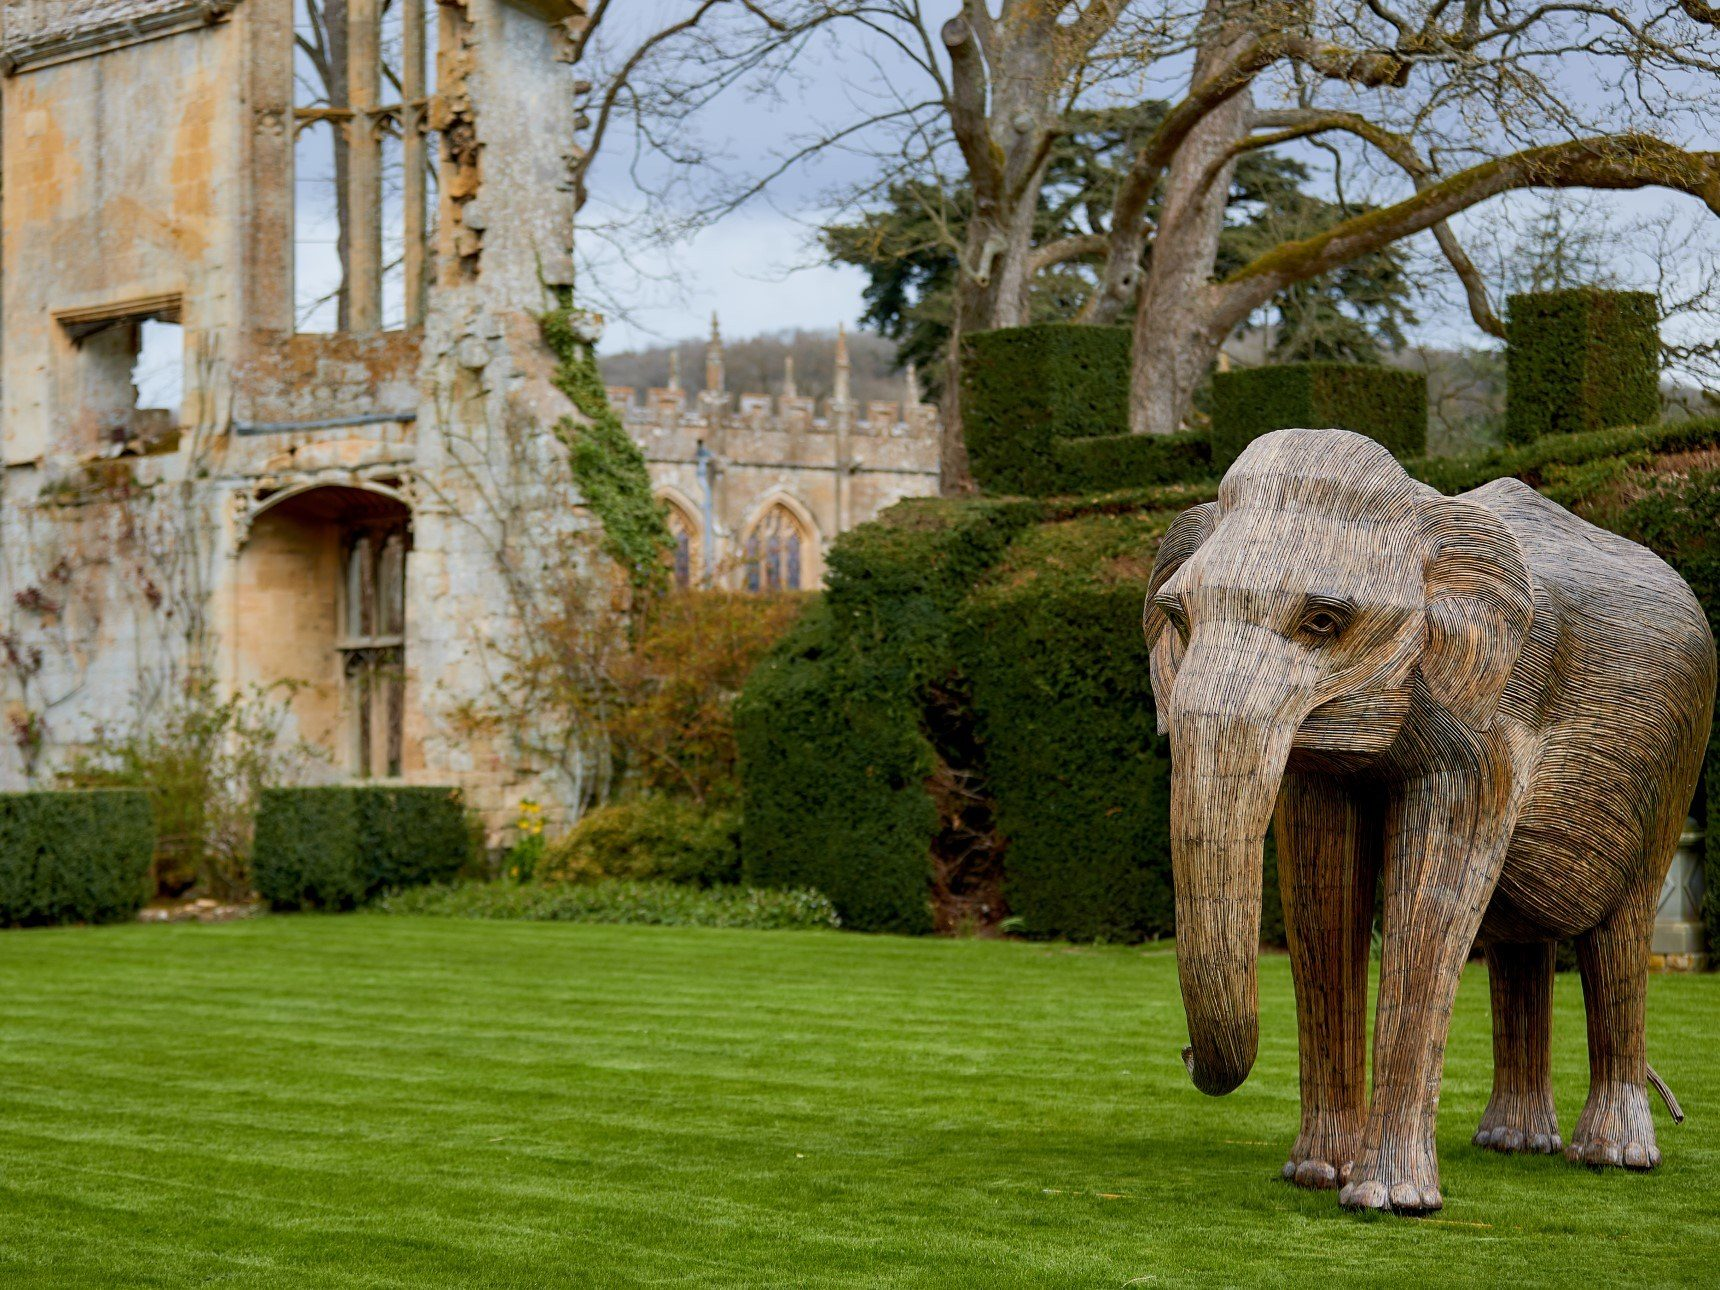 Matriarch elephant in front of castle ruins